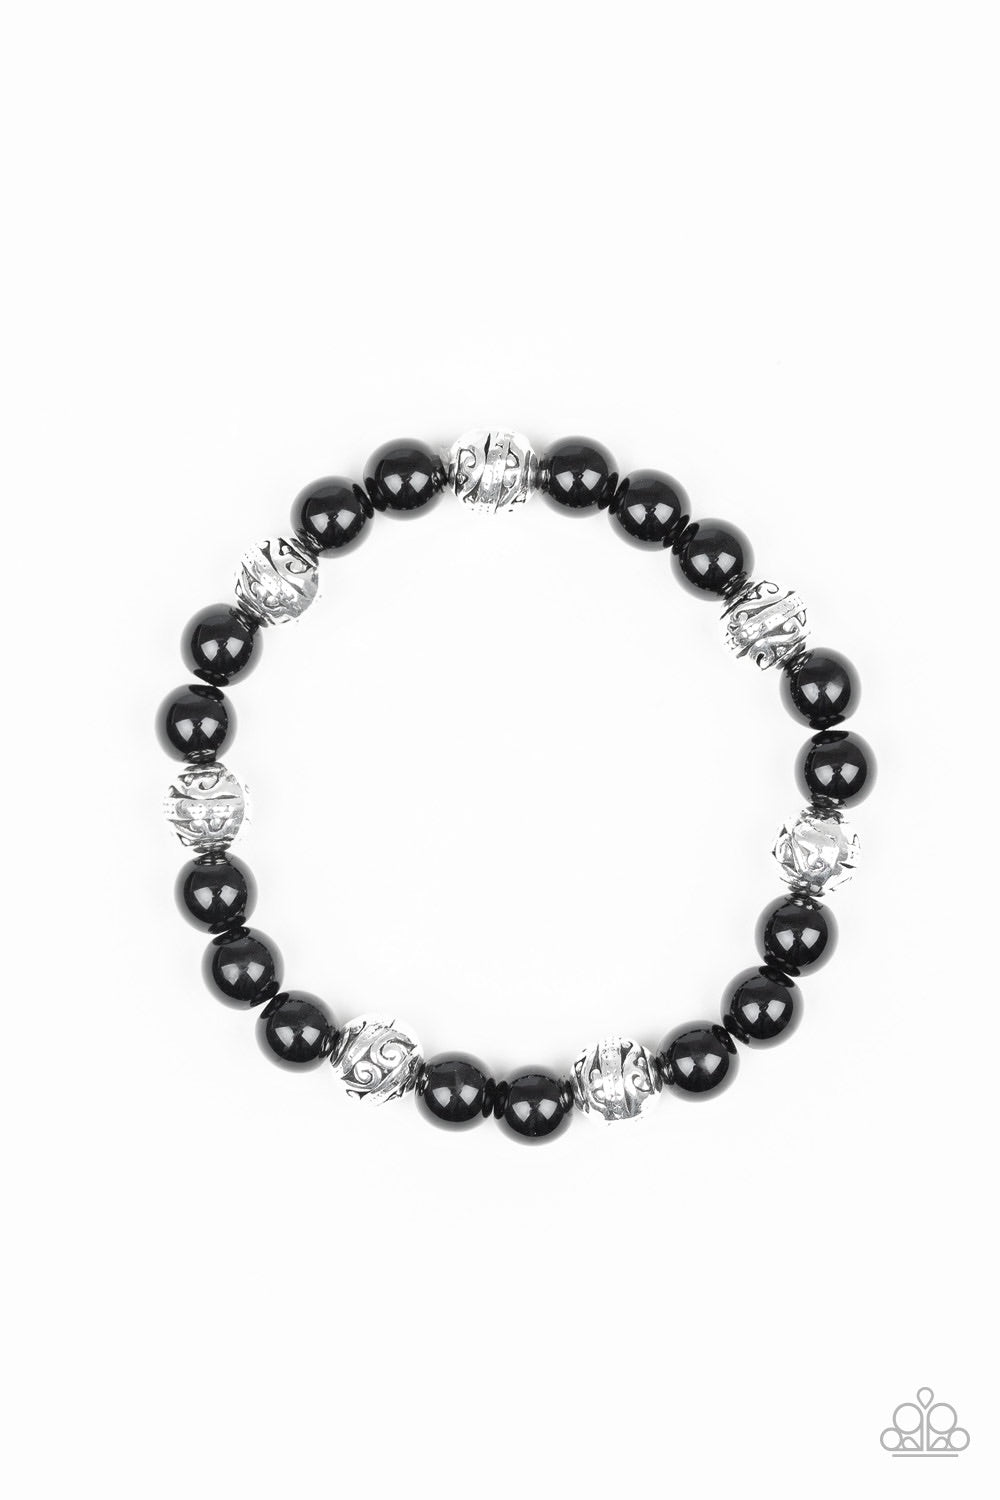 Paparazzi Poised For Perfection Bracelet - Black